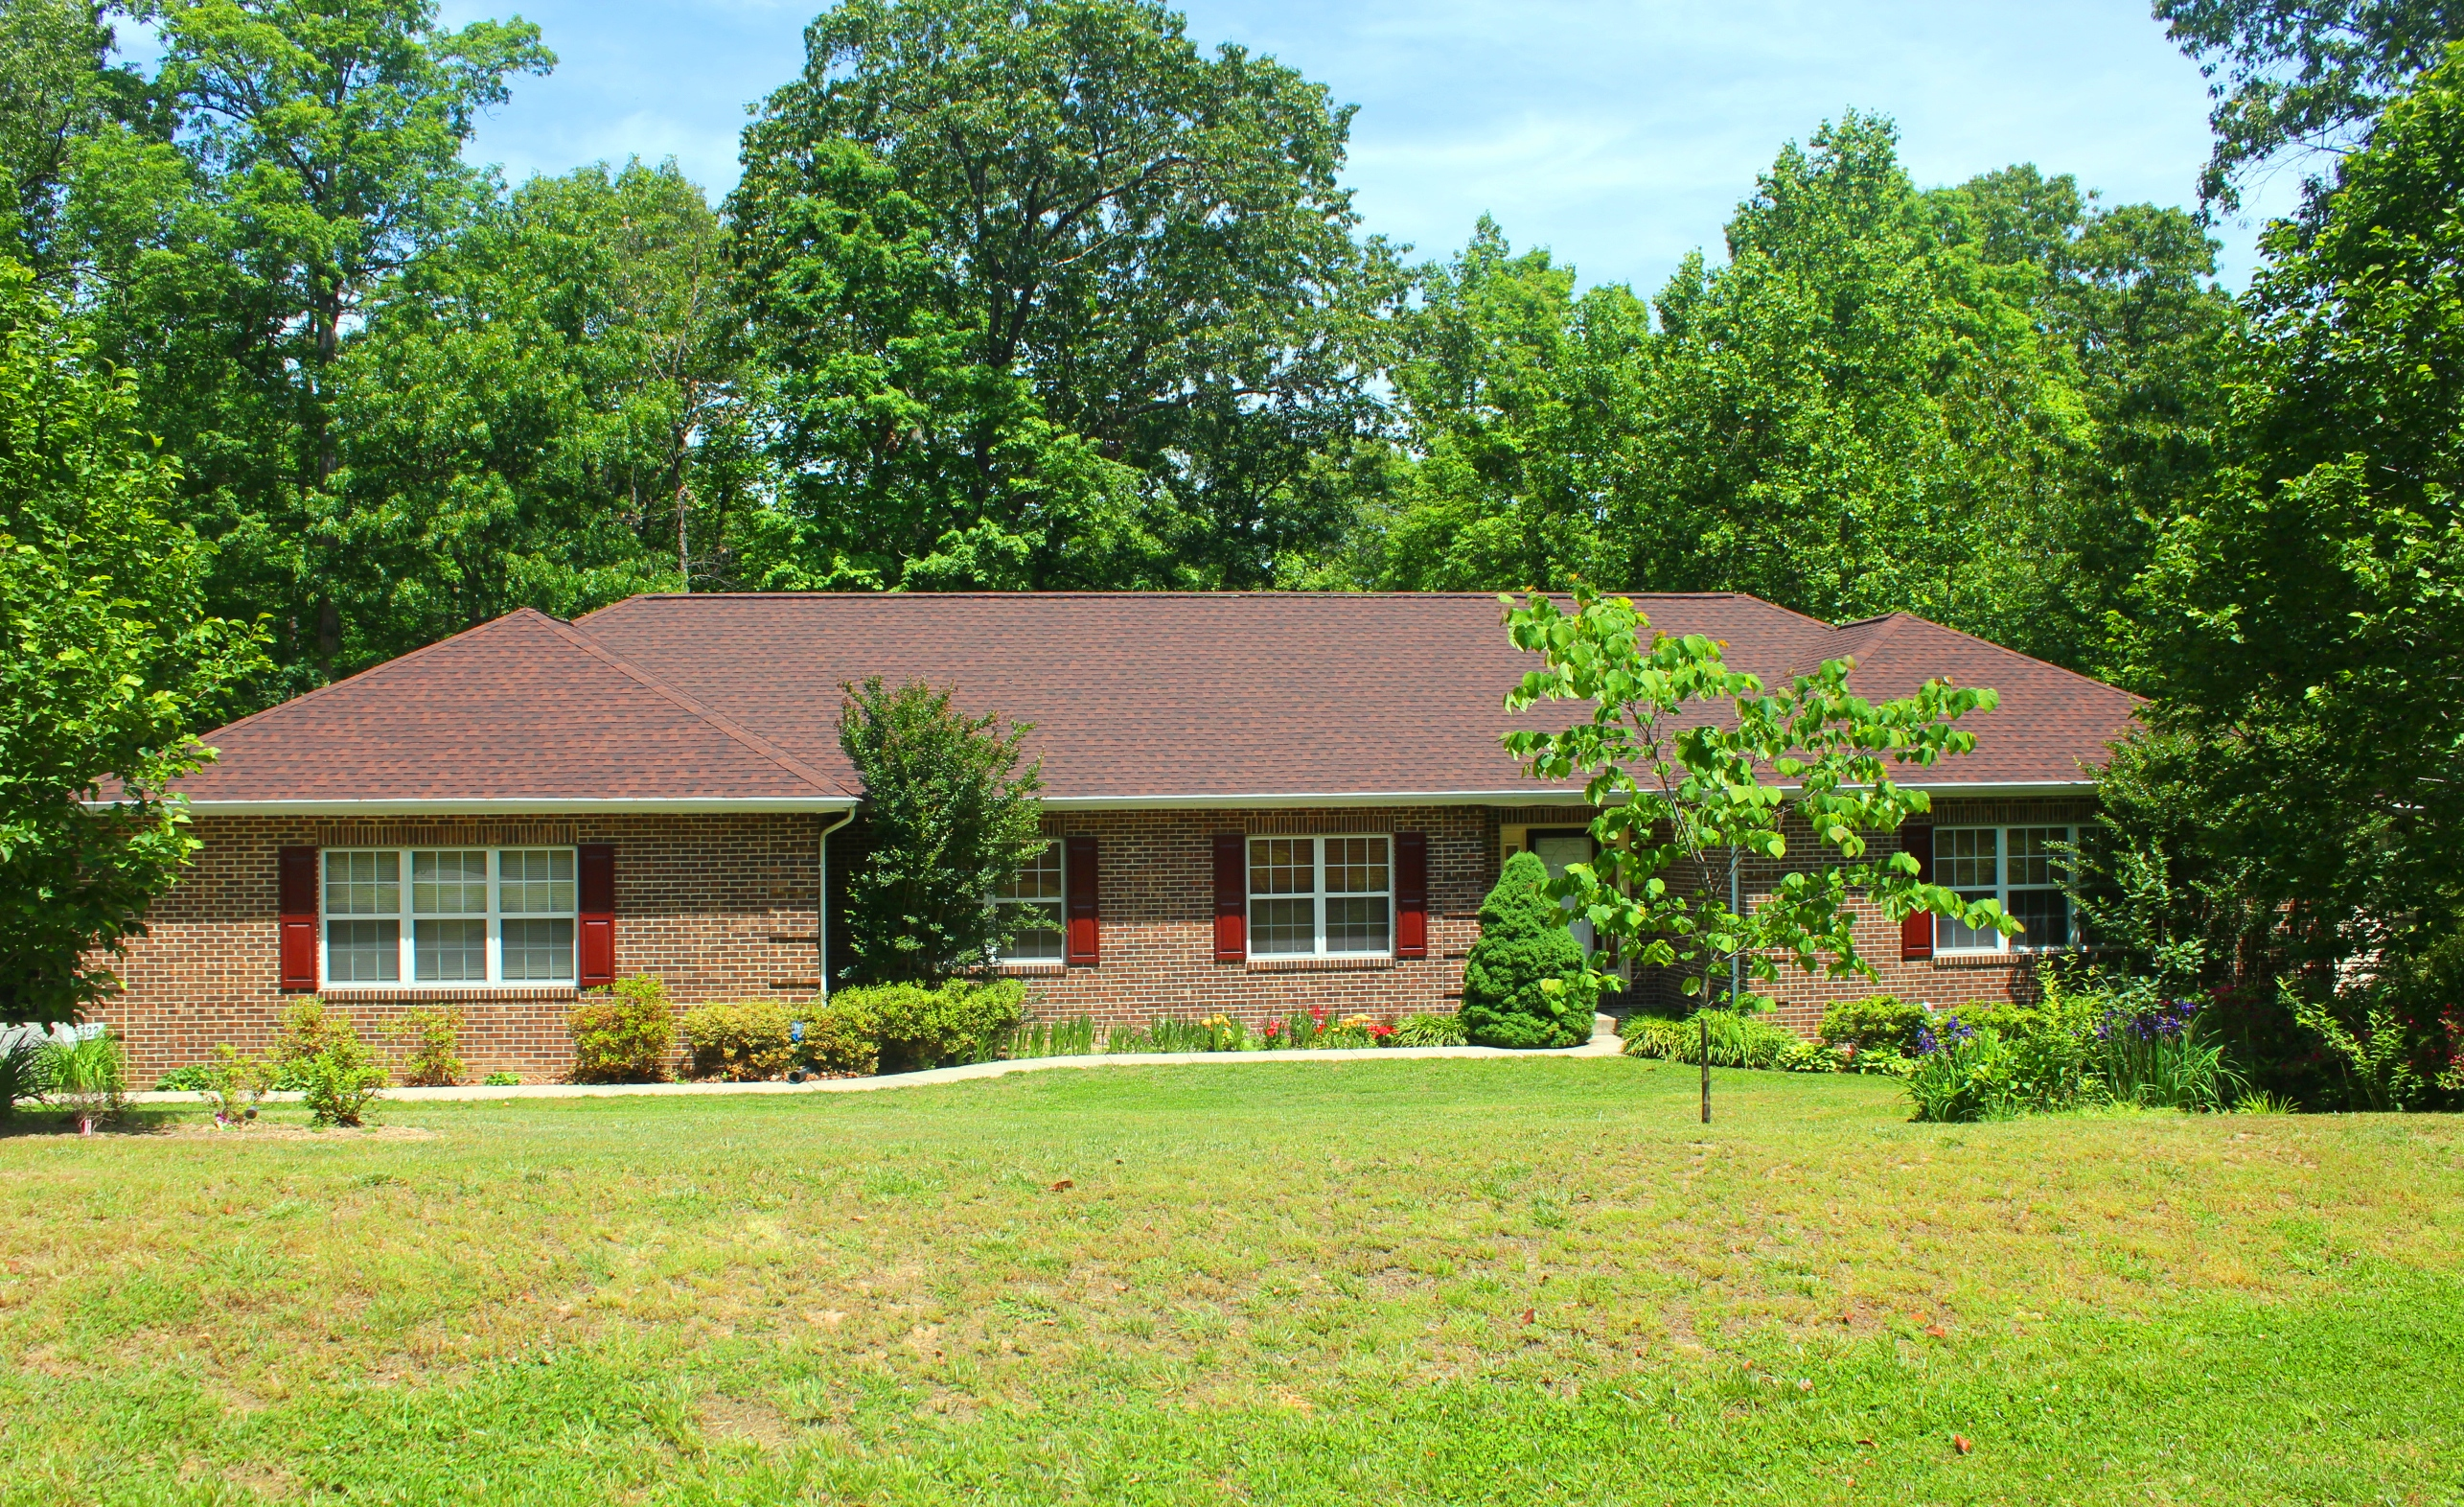 Single family home on over 3 acres in waldorf md for Waldorf home